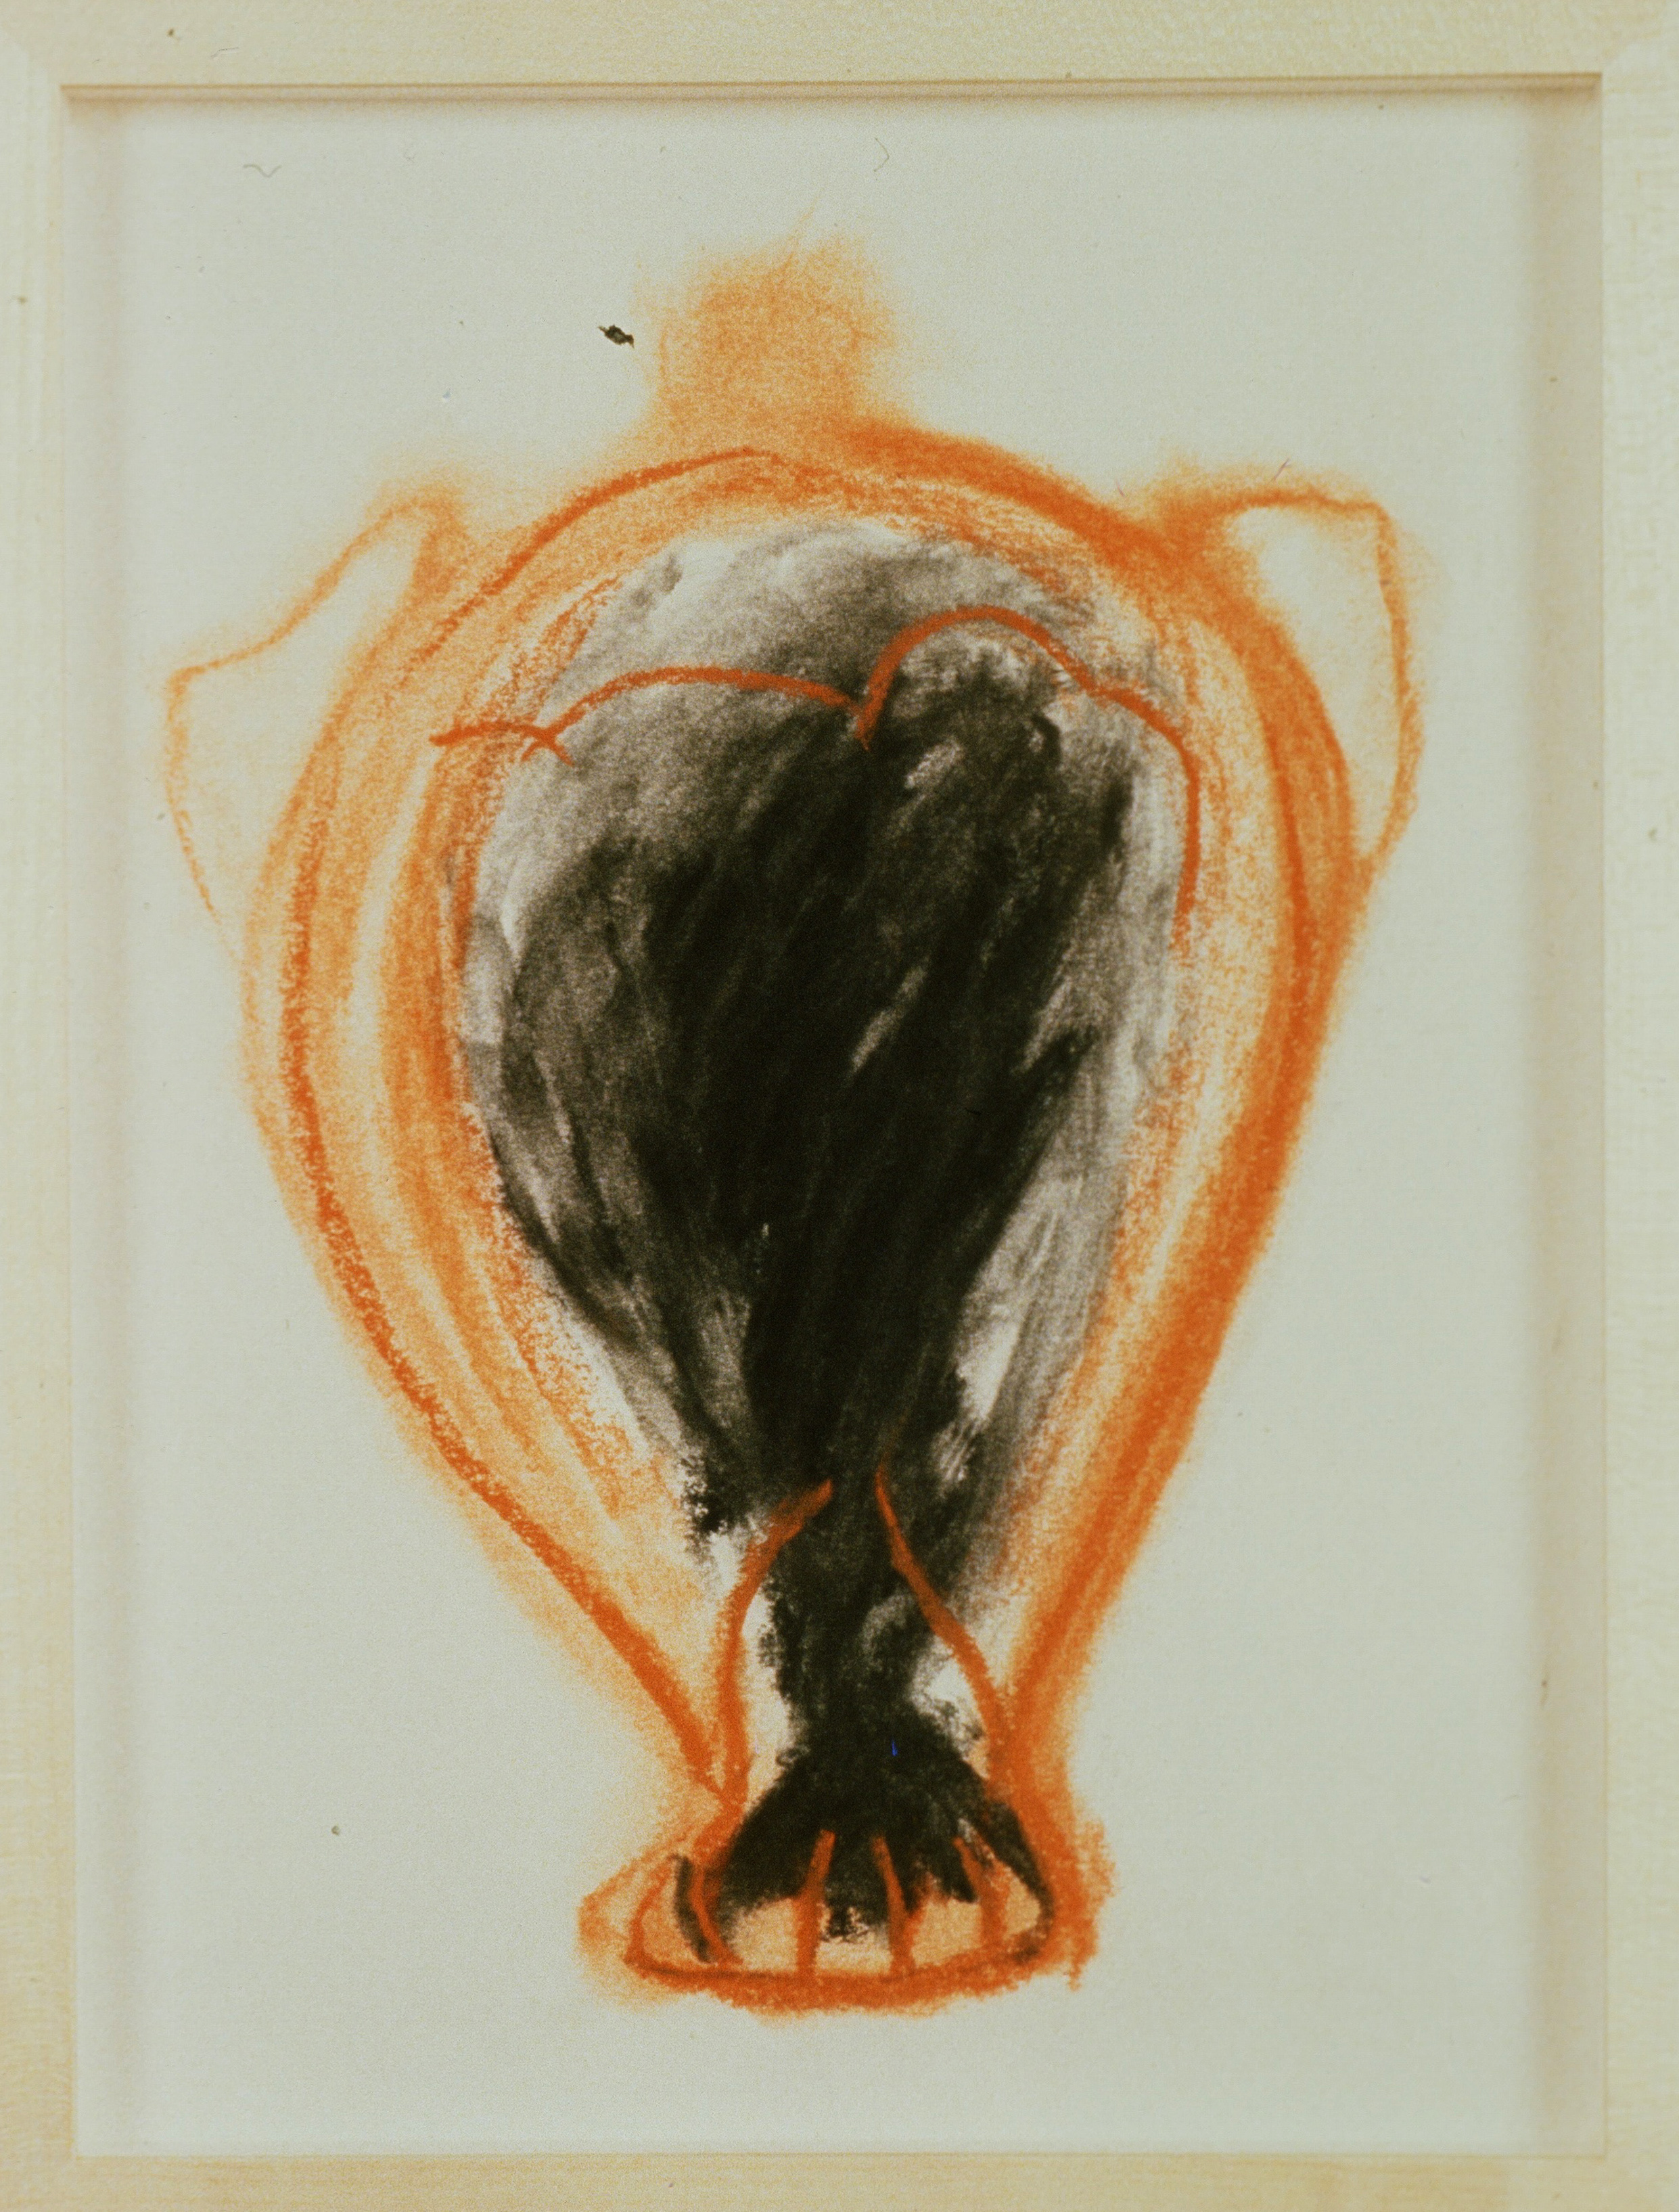 1991 - Vase Drawing black orange